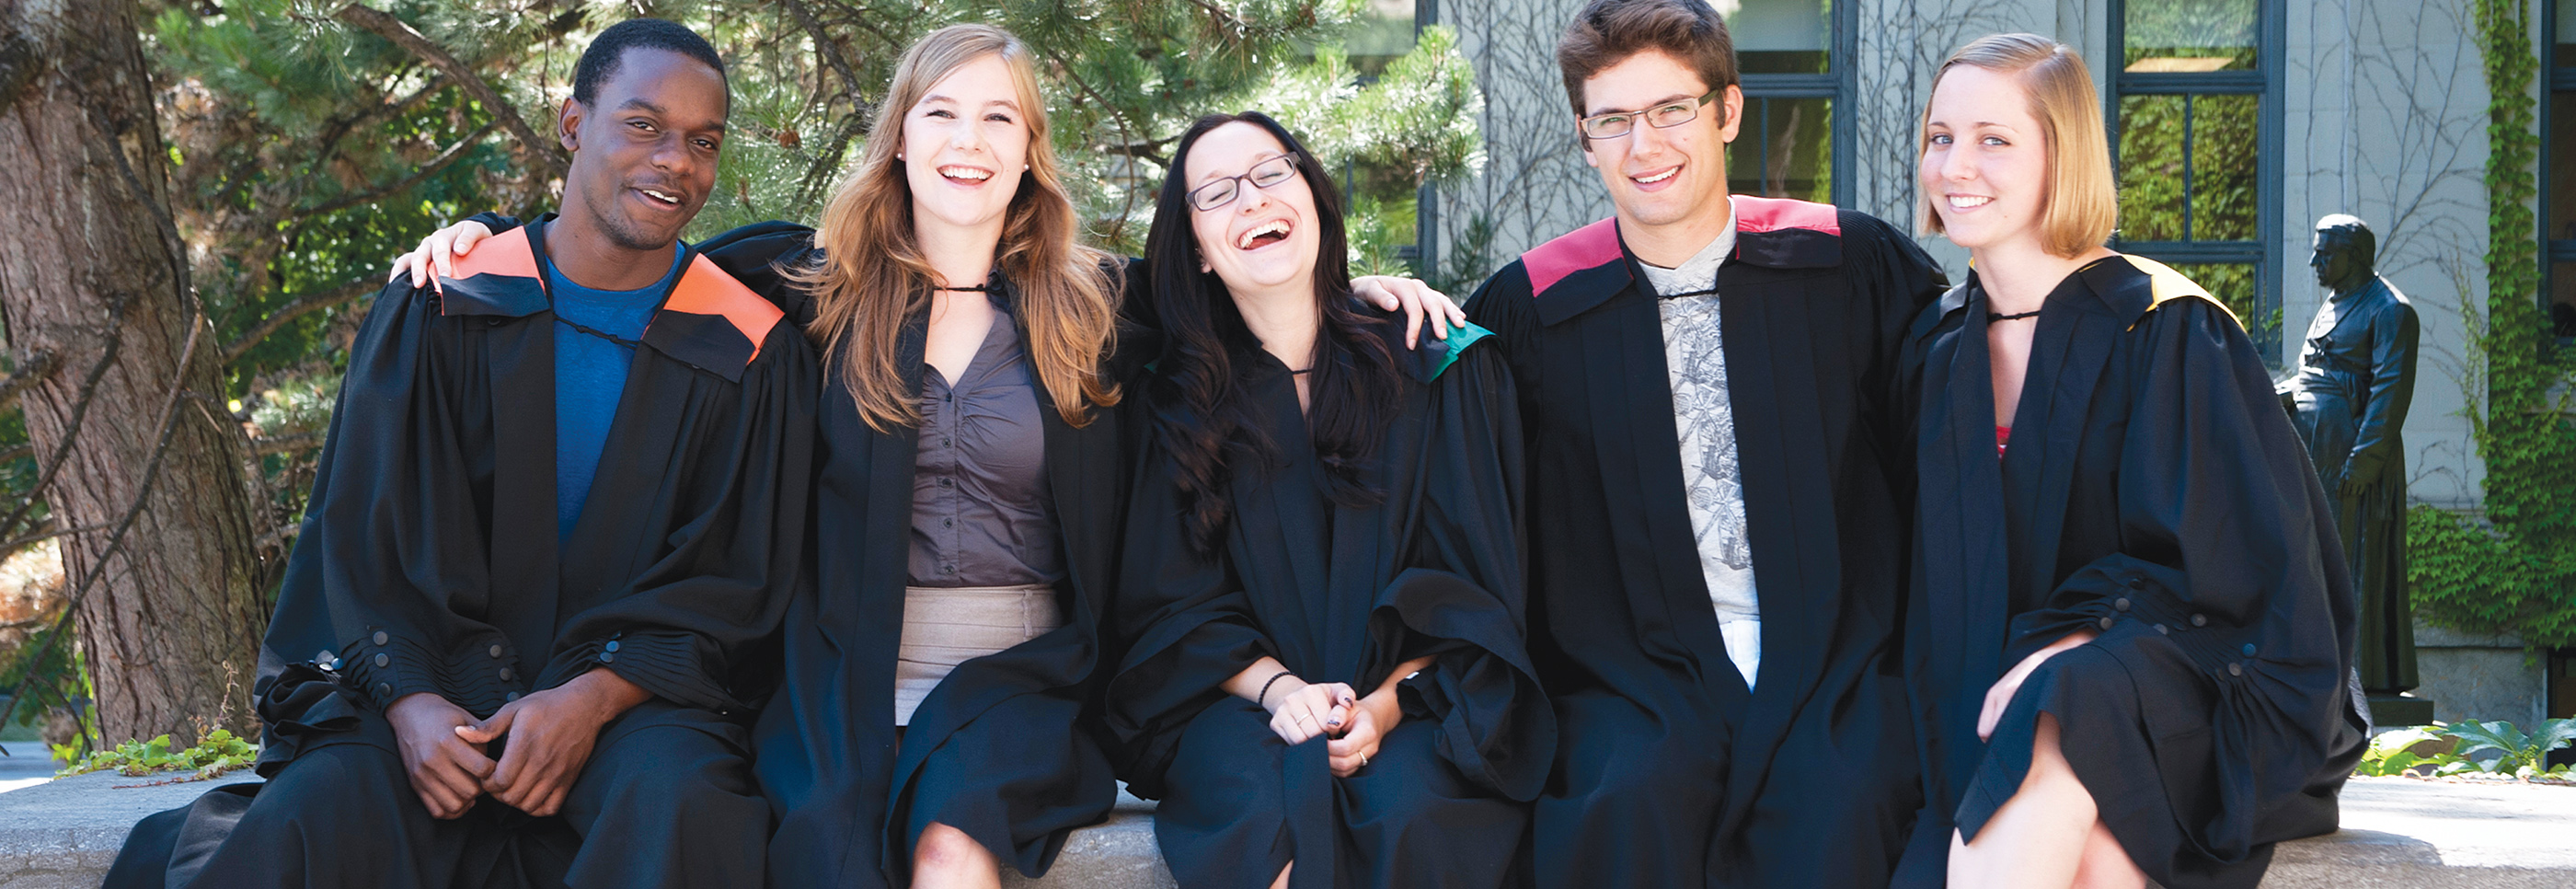 Graduating students who are celebrating at convocation